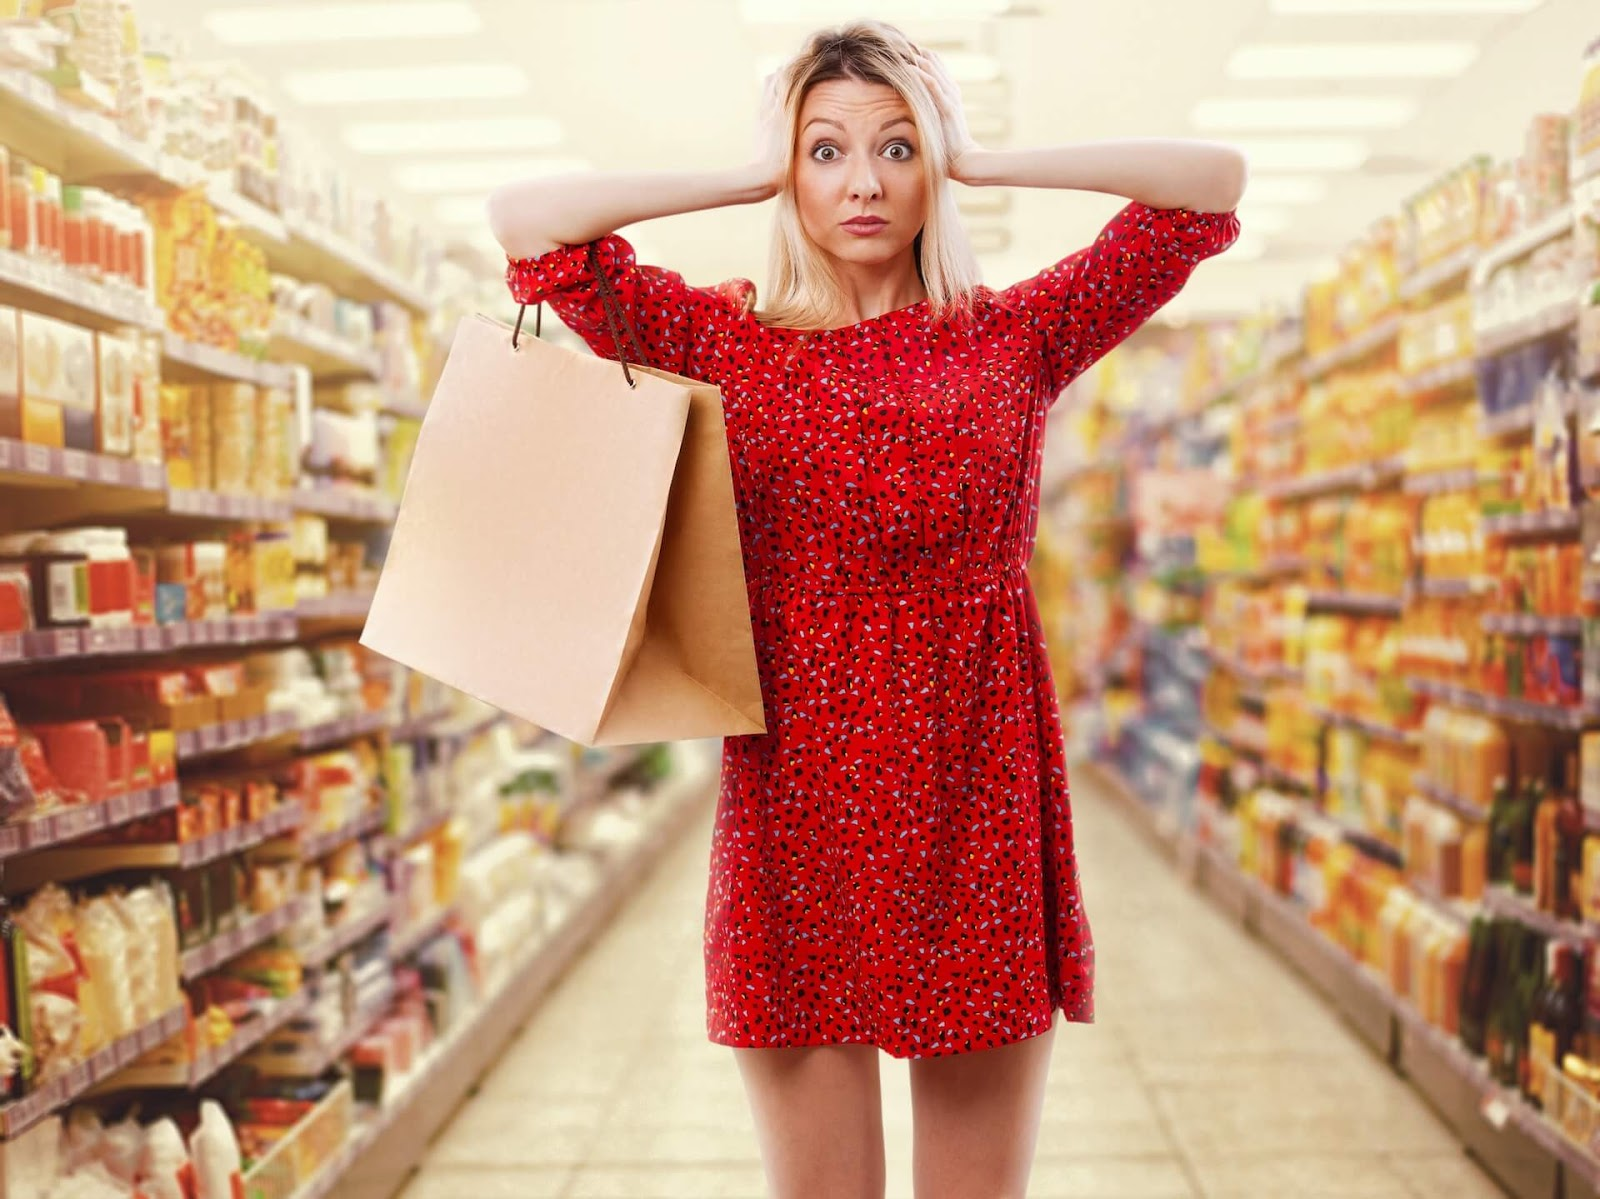 Woman looking frazzled in a grocery store